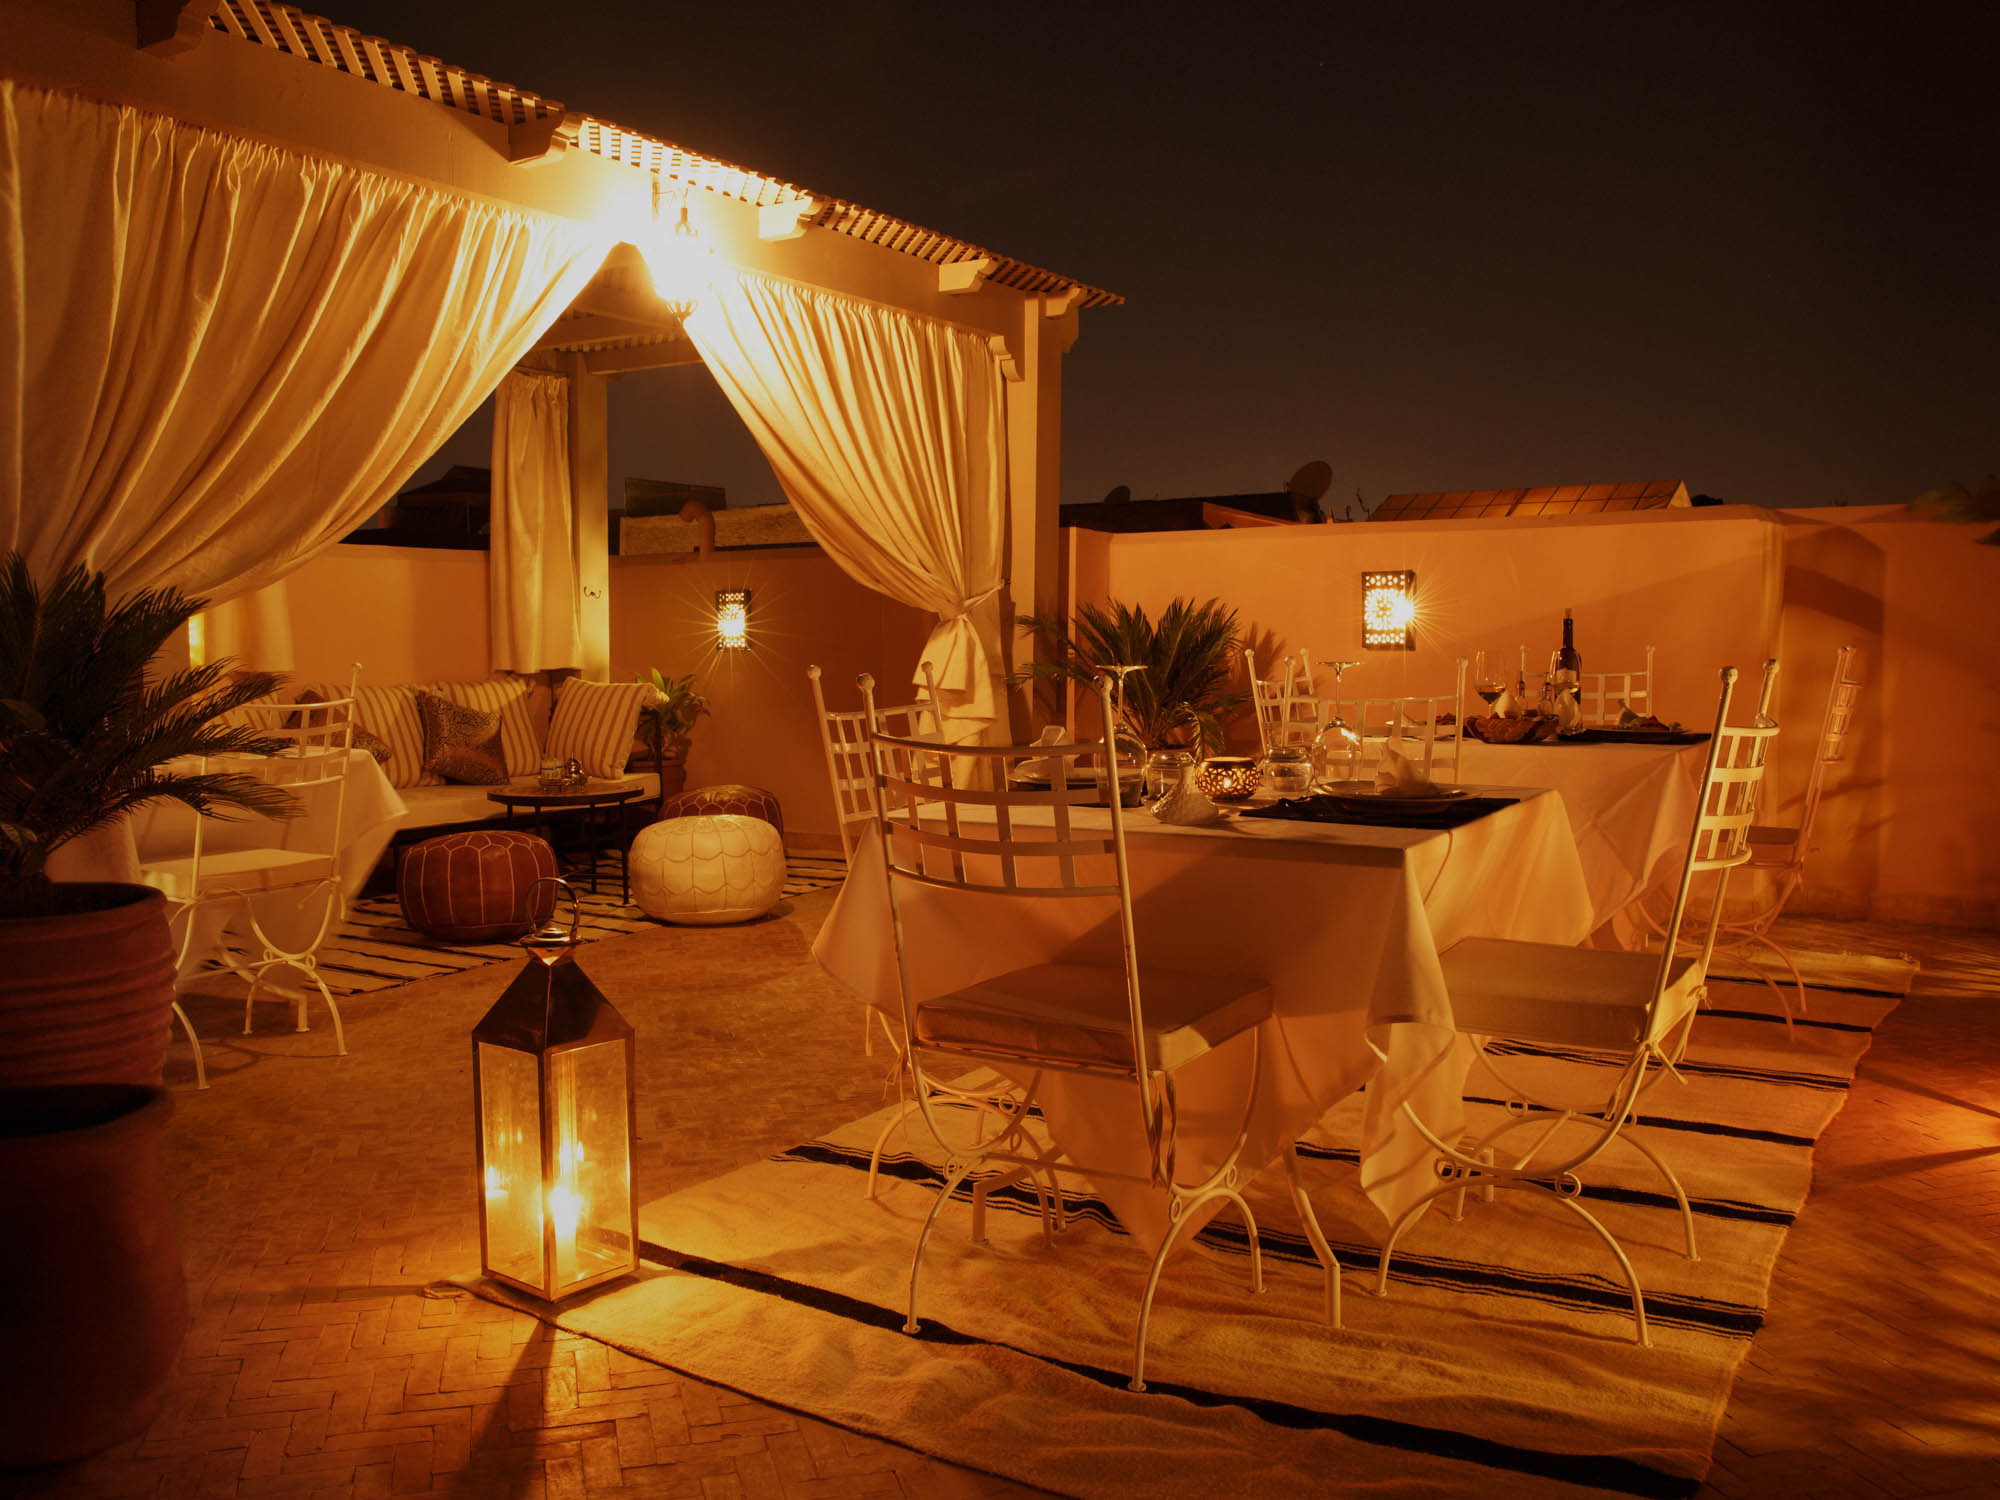 Al Fresco Dining, Moroccan Poufs and Cushions on Couch on Luxury Rooftop patio at Riad Boutique Hotel.